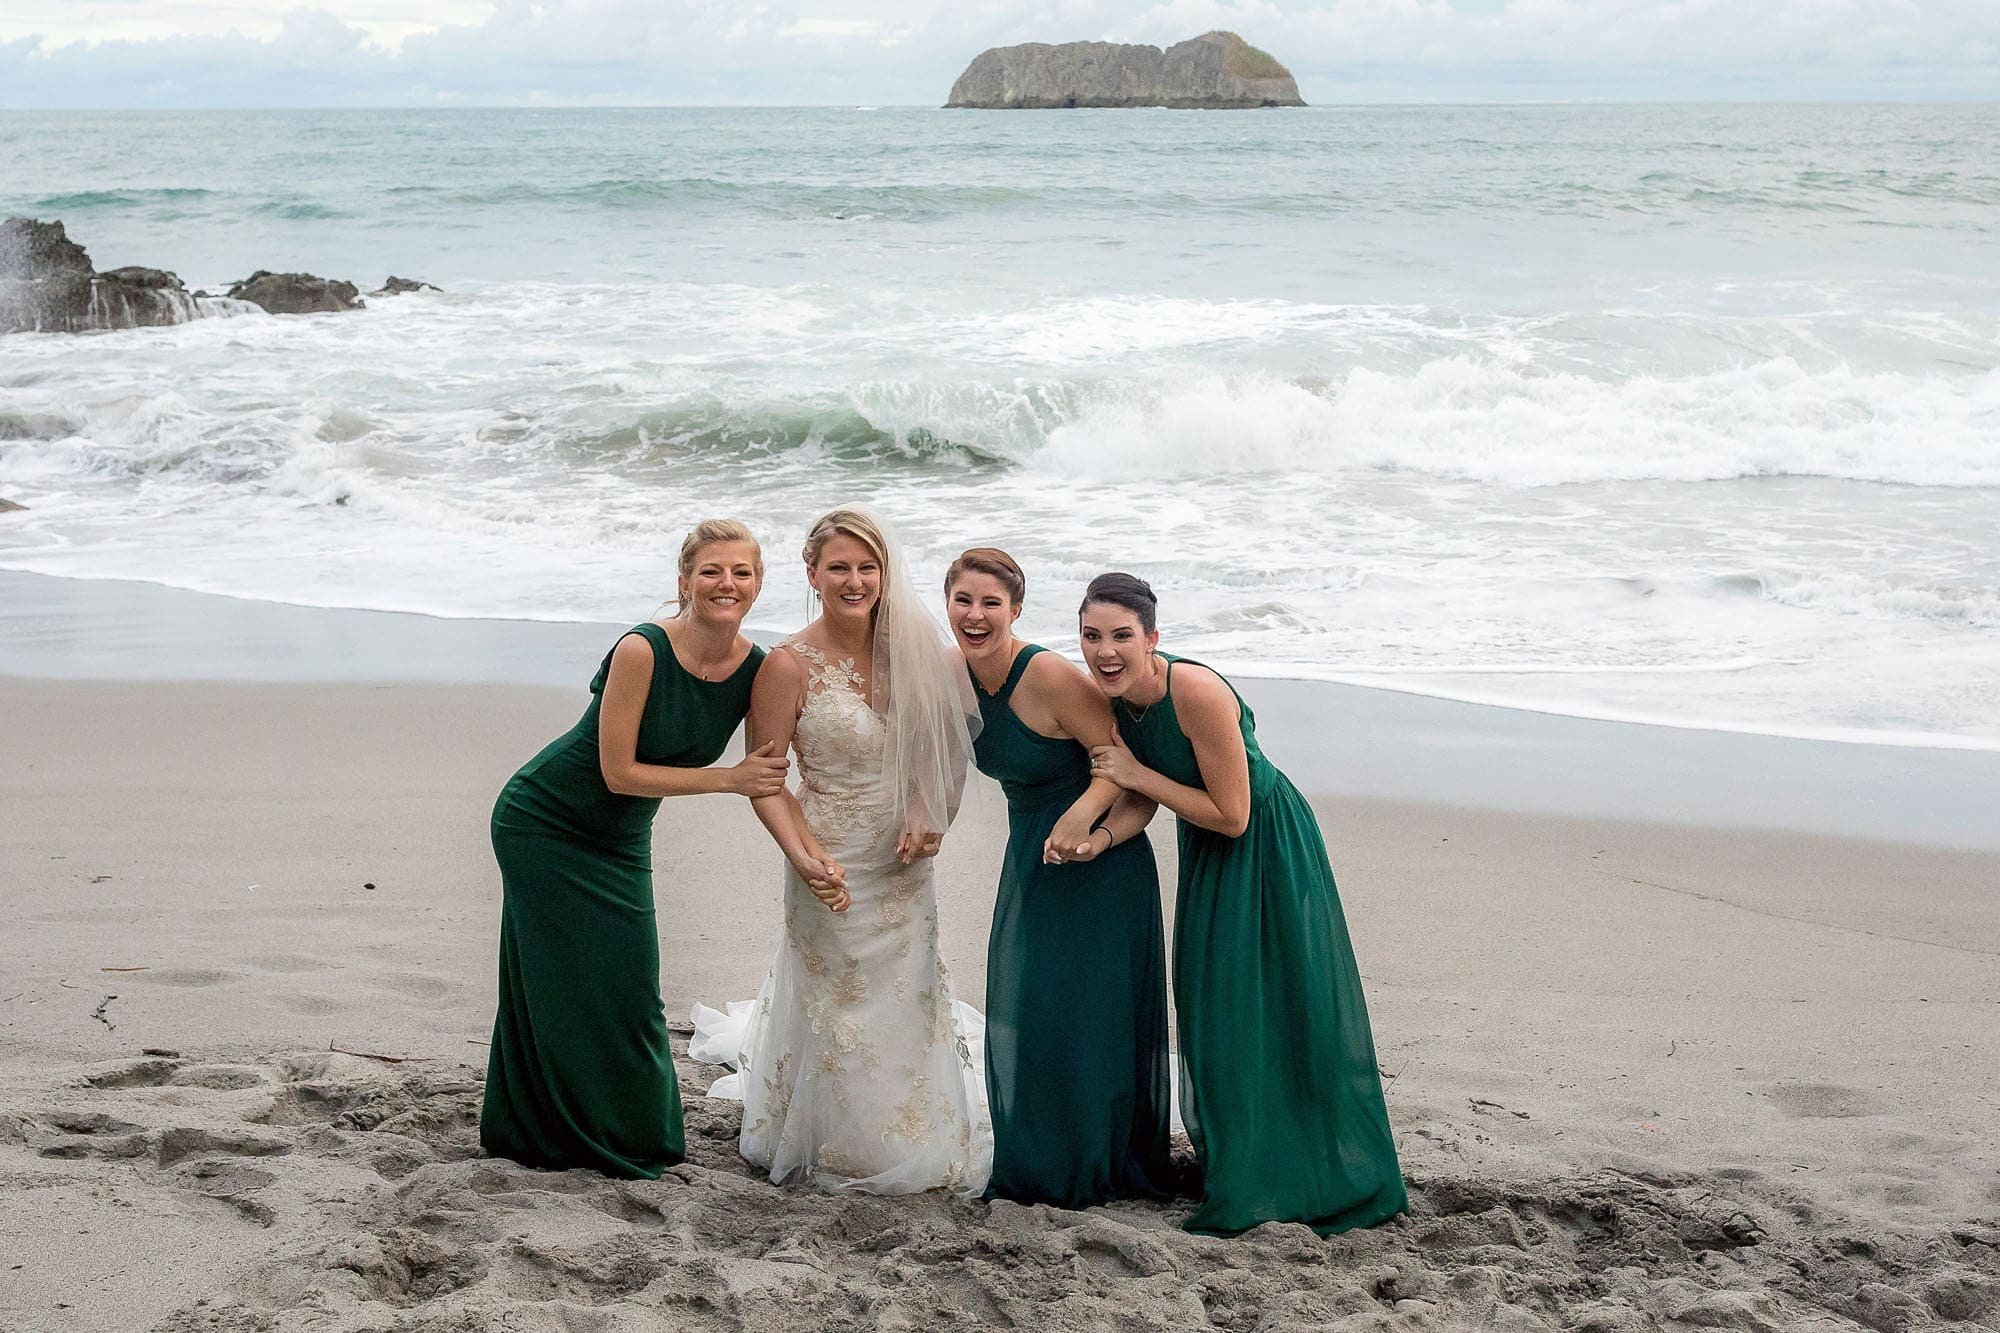 The bride and her girls on the beach